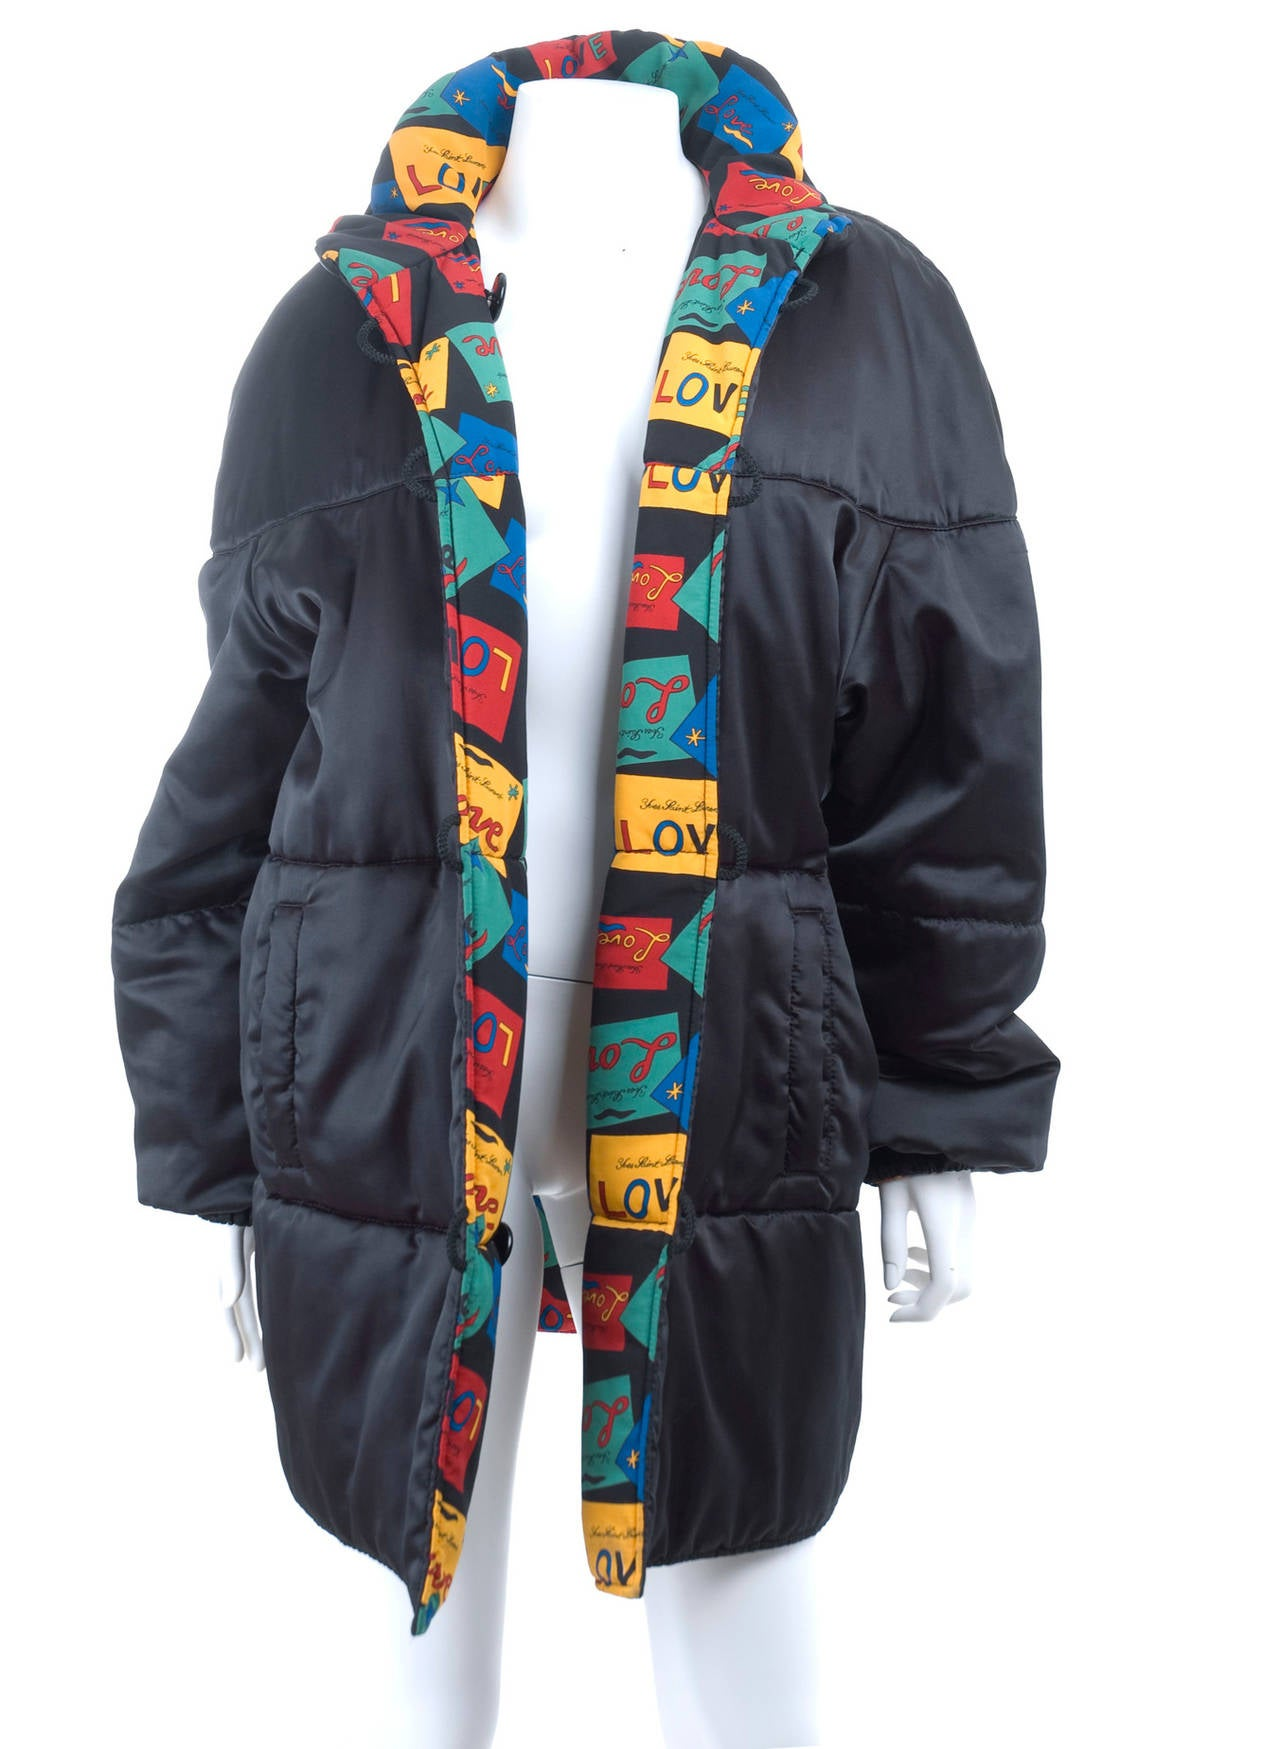 Yves Saint Laurent Reversible LOVE Puffer Jacket In Excellent Condition For Sale In Hamburg, DE